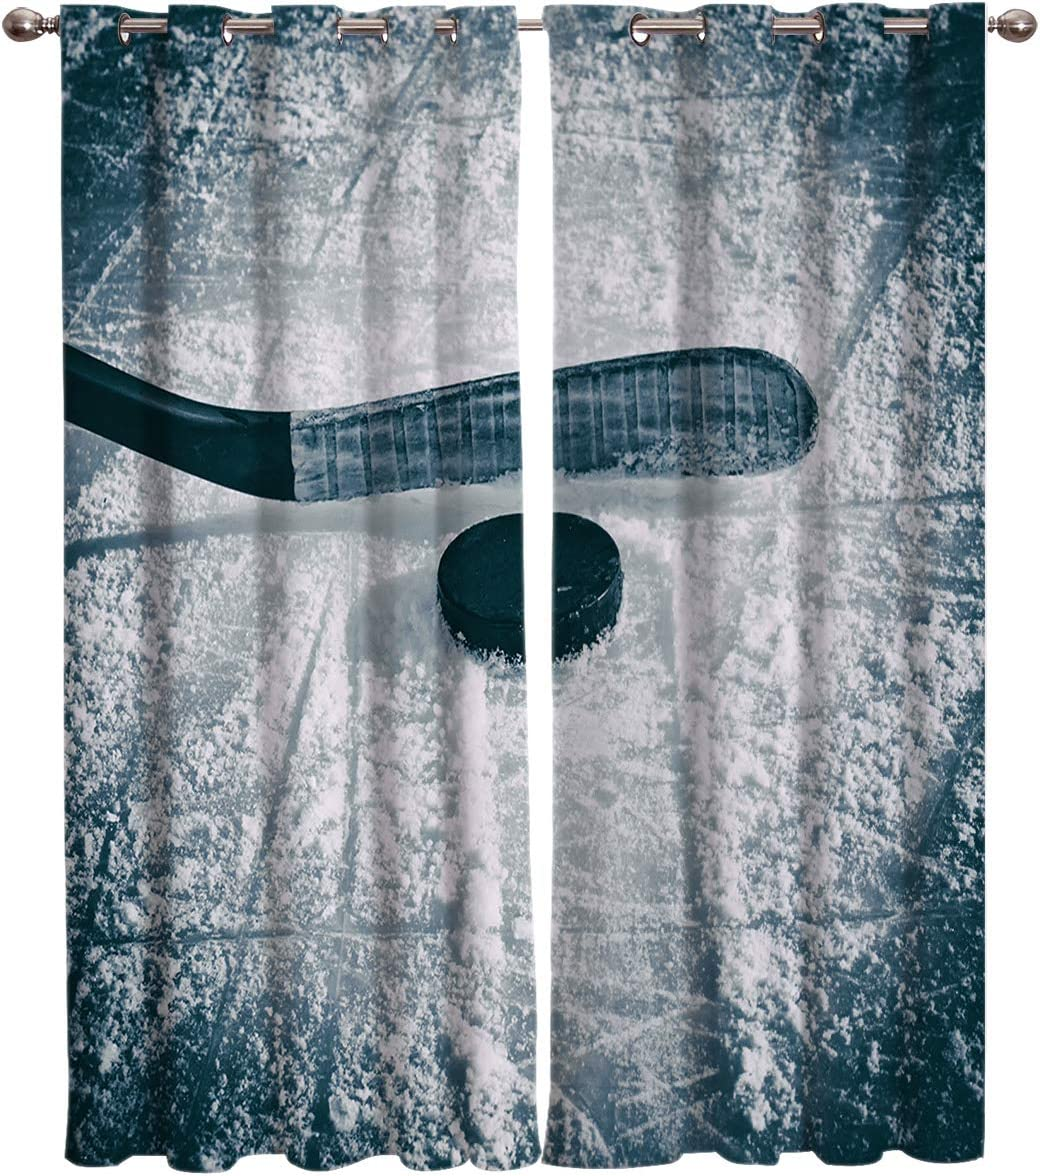 Arts Language 2 Panels Blackout Curtains for Boys Girls Bedroom Hockey Sports Ground Printed Windows Treatment Grommet Drapes for Livingroom Office 52 W X96 H InX2